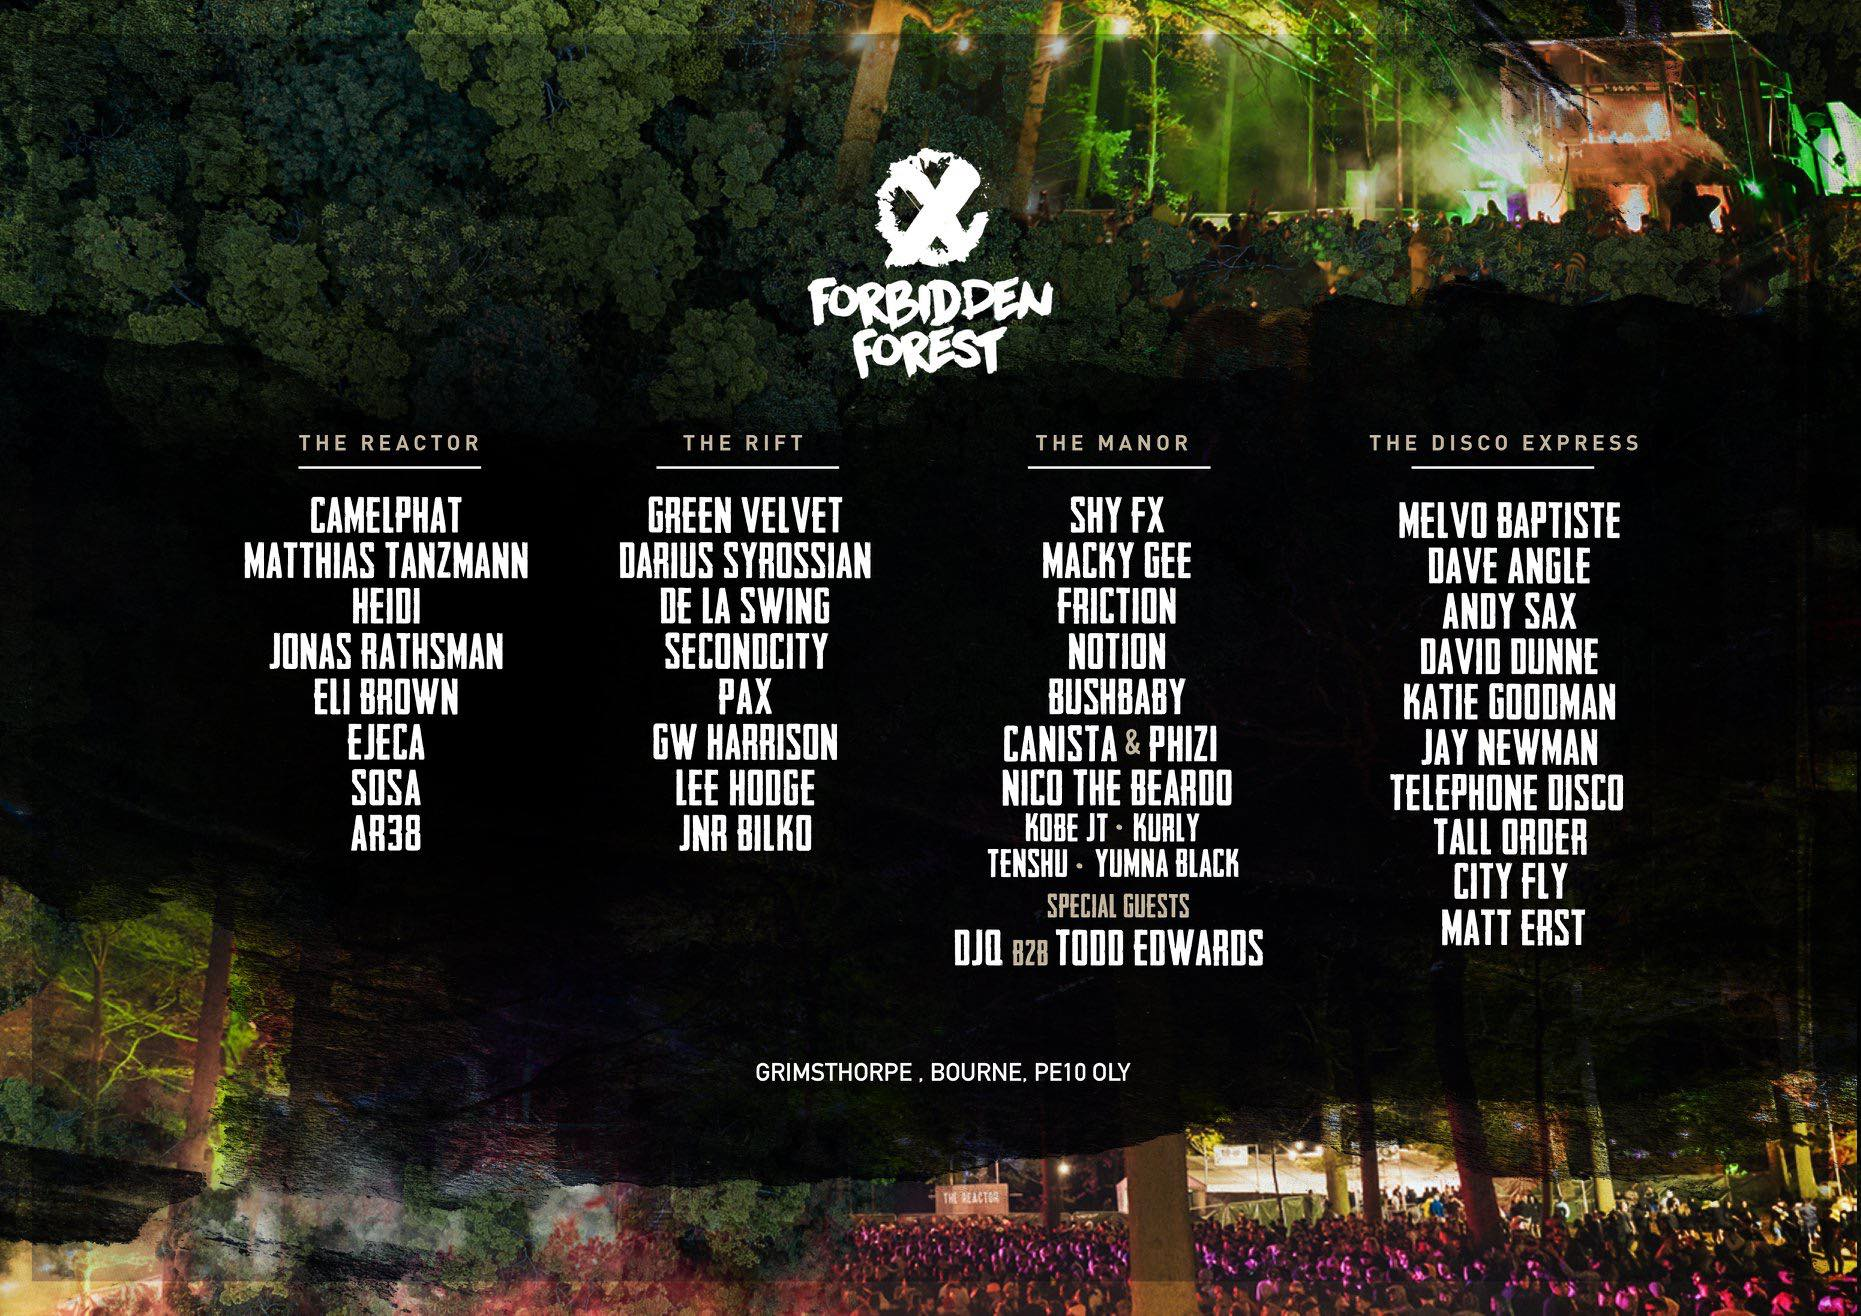 Forbidden Forest Sept 2019